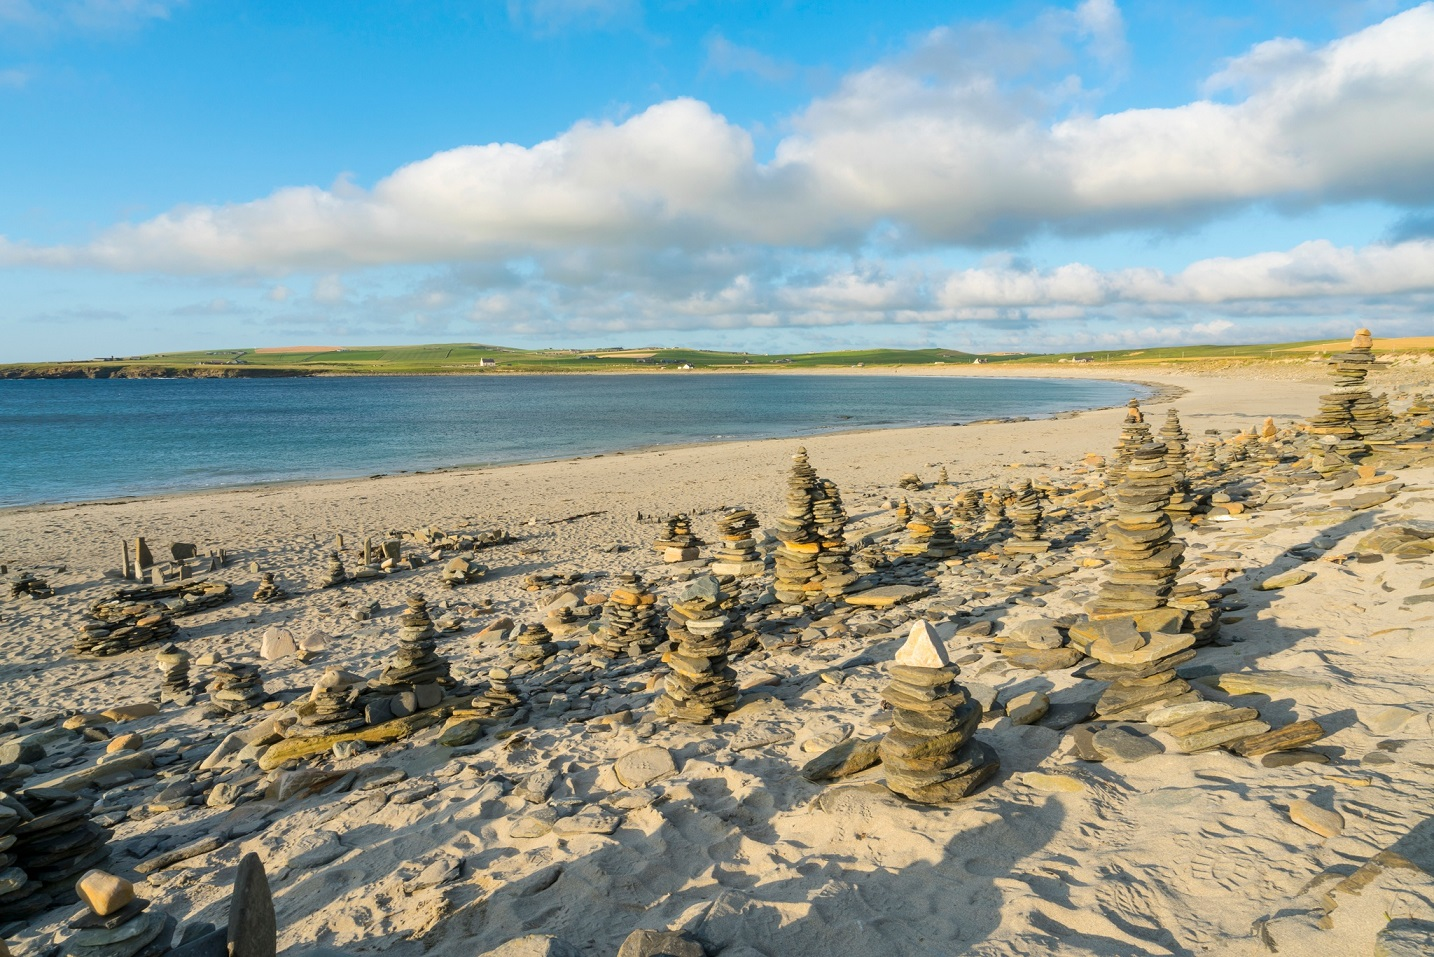 The Bay of Skaill where every summer stone sculptures appear along the shore line